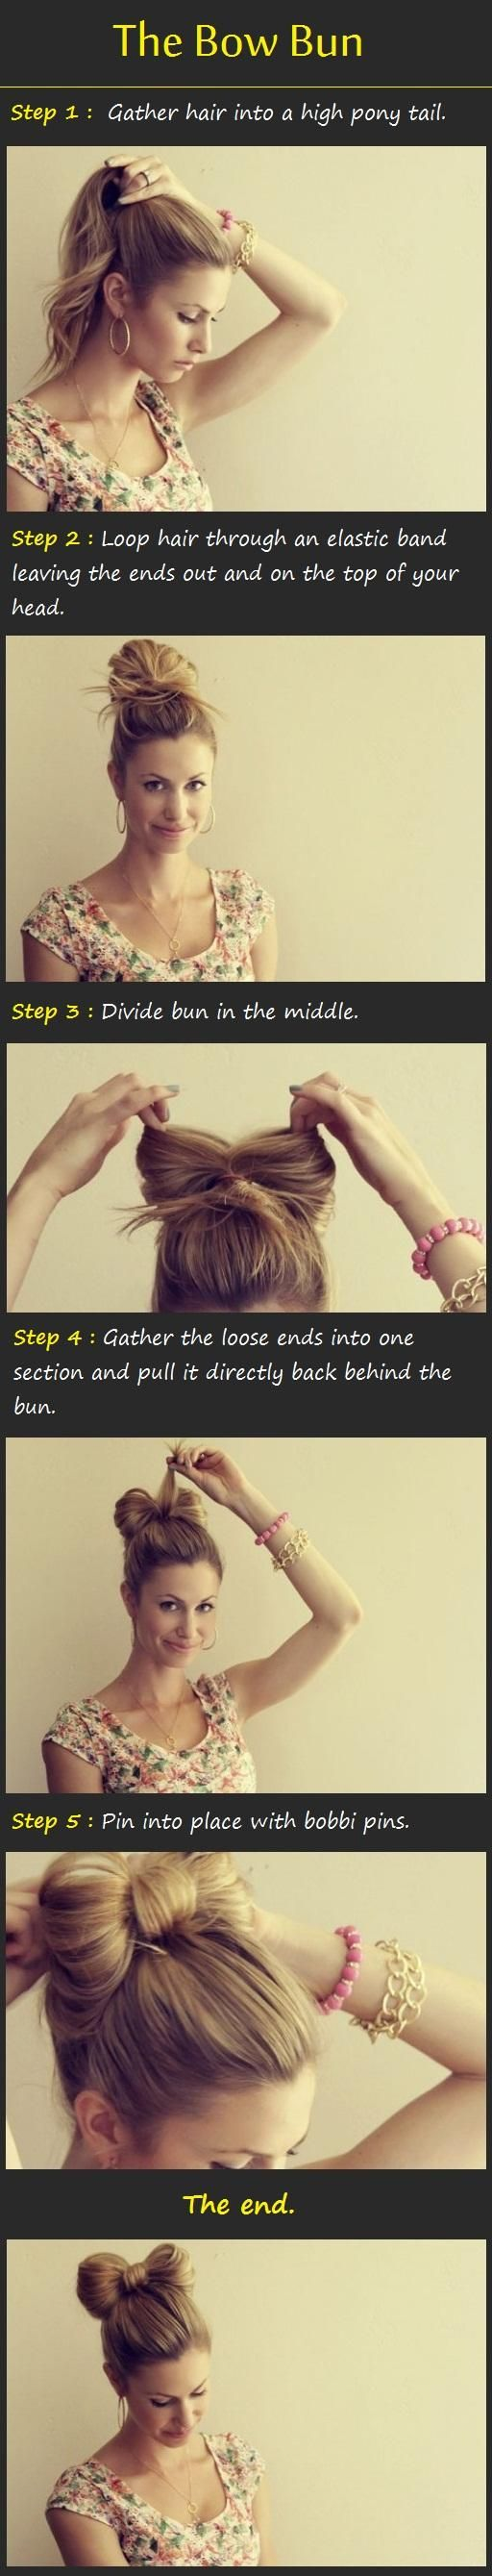 ~ DIY The Bow Bun Tutorial ~